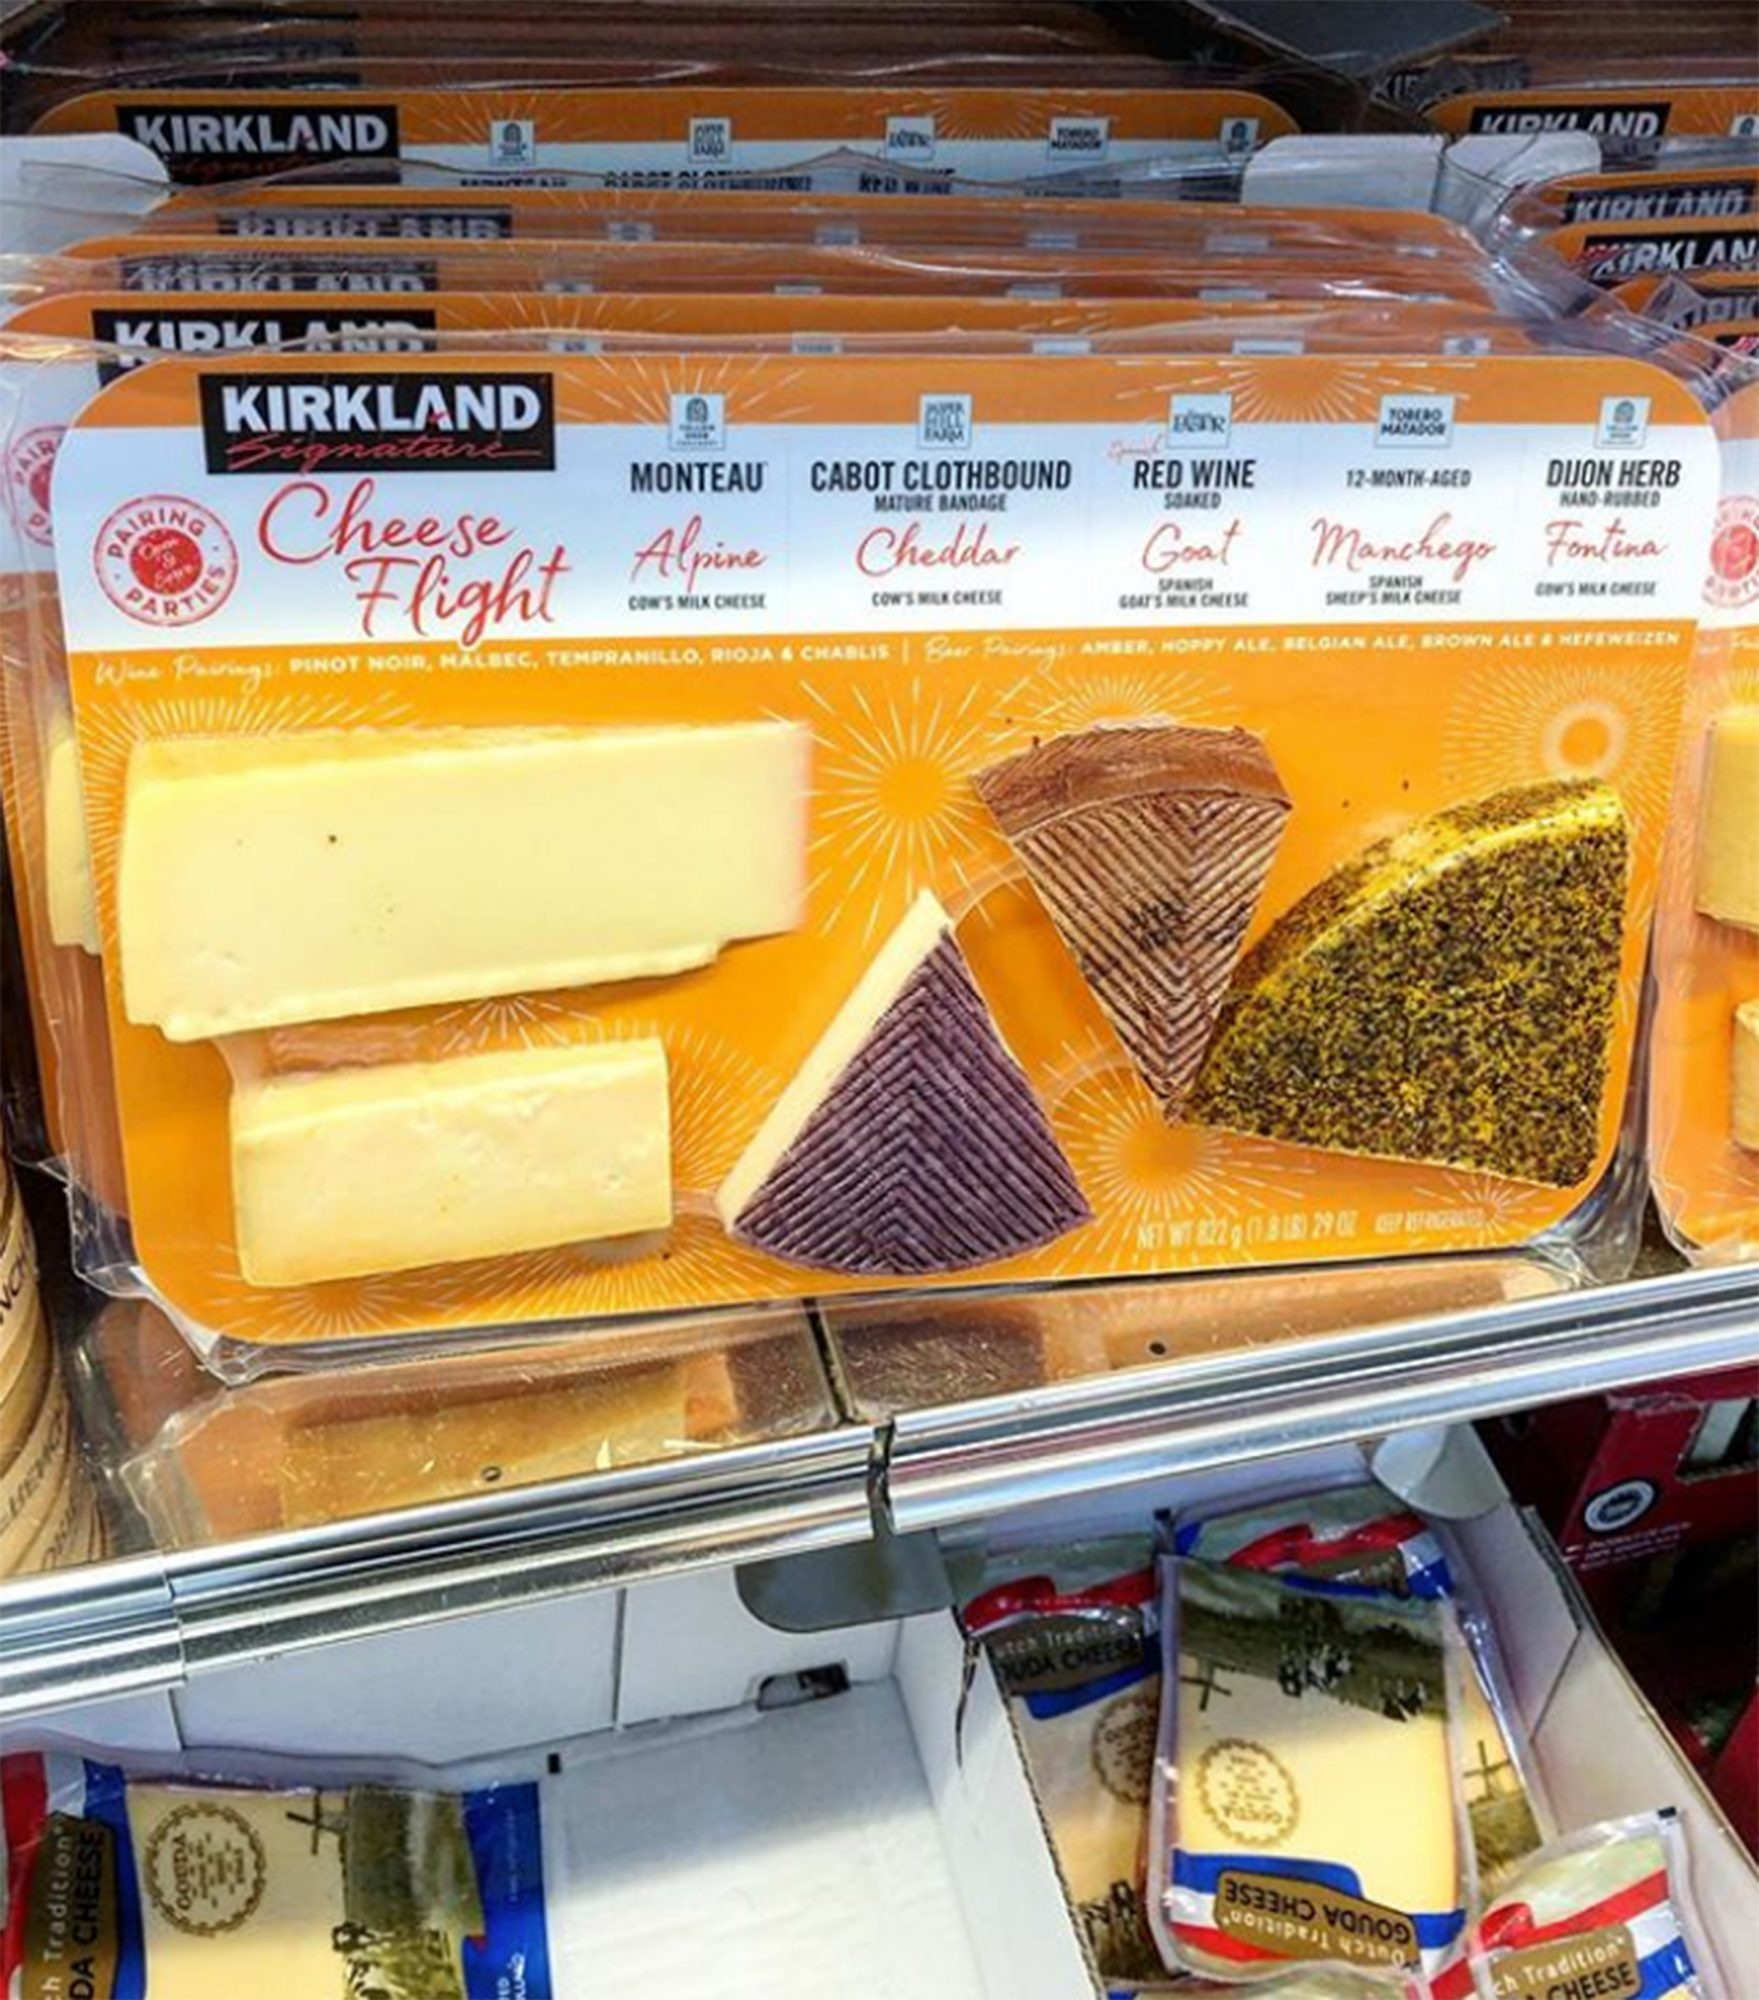 Costco cheese flight